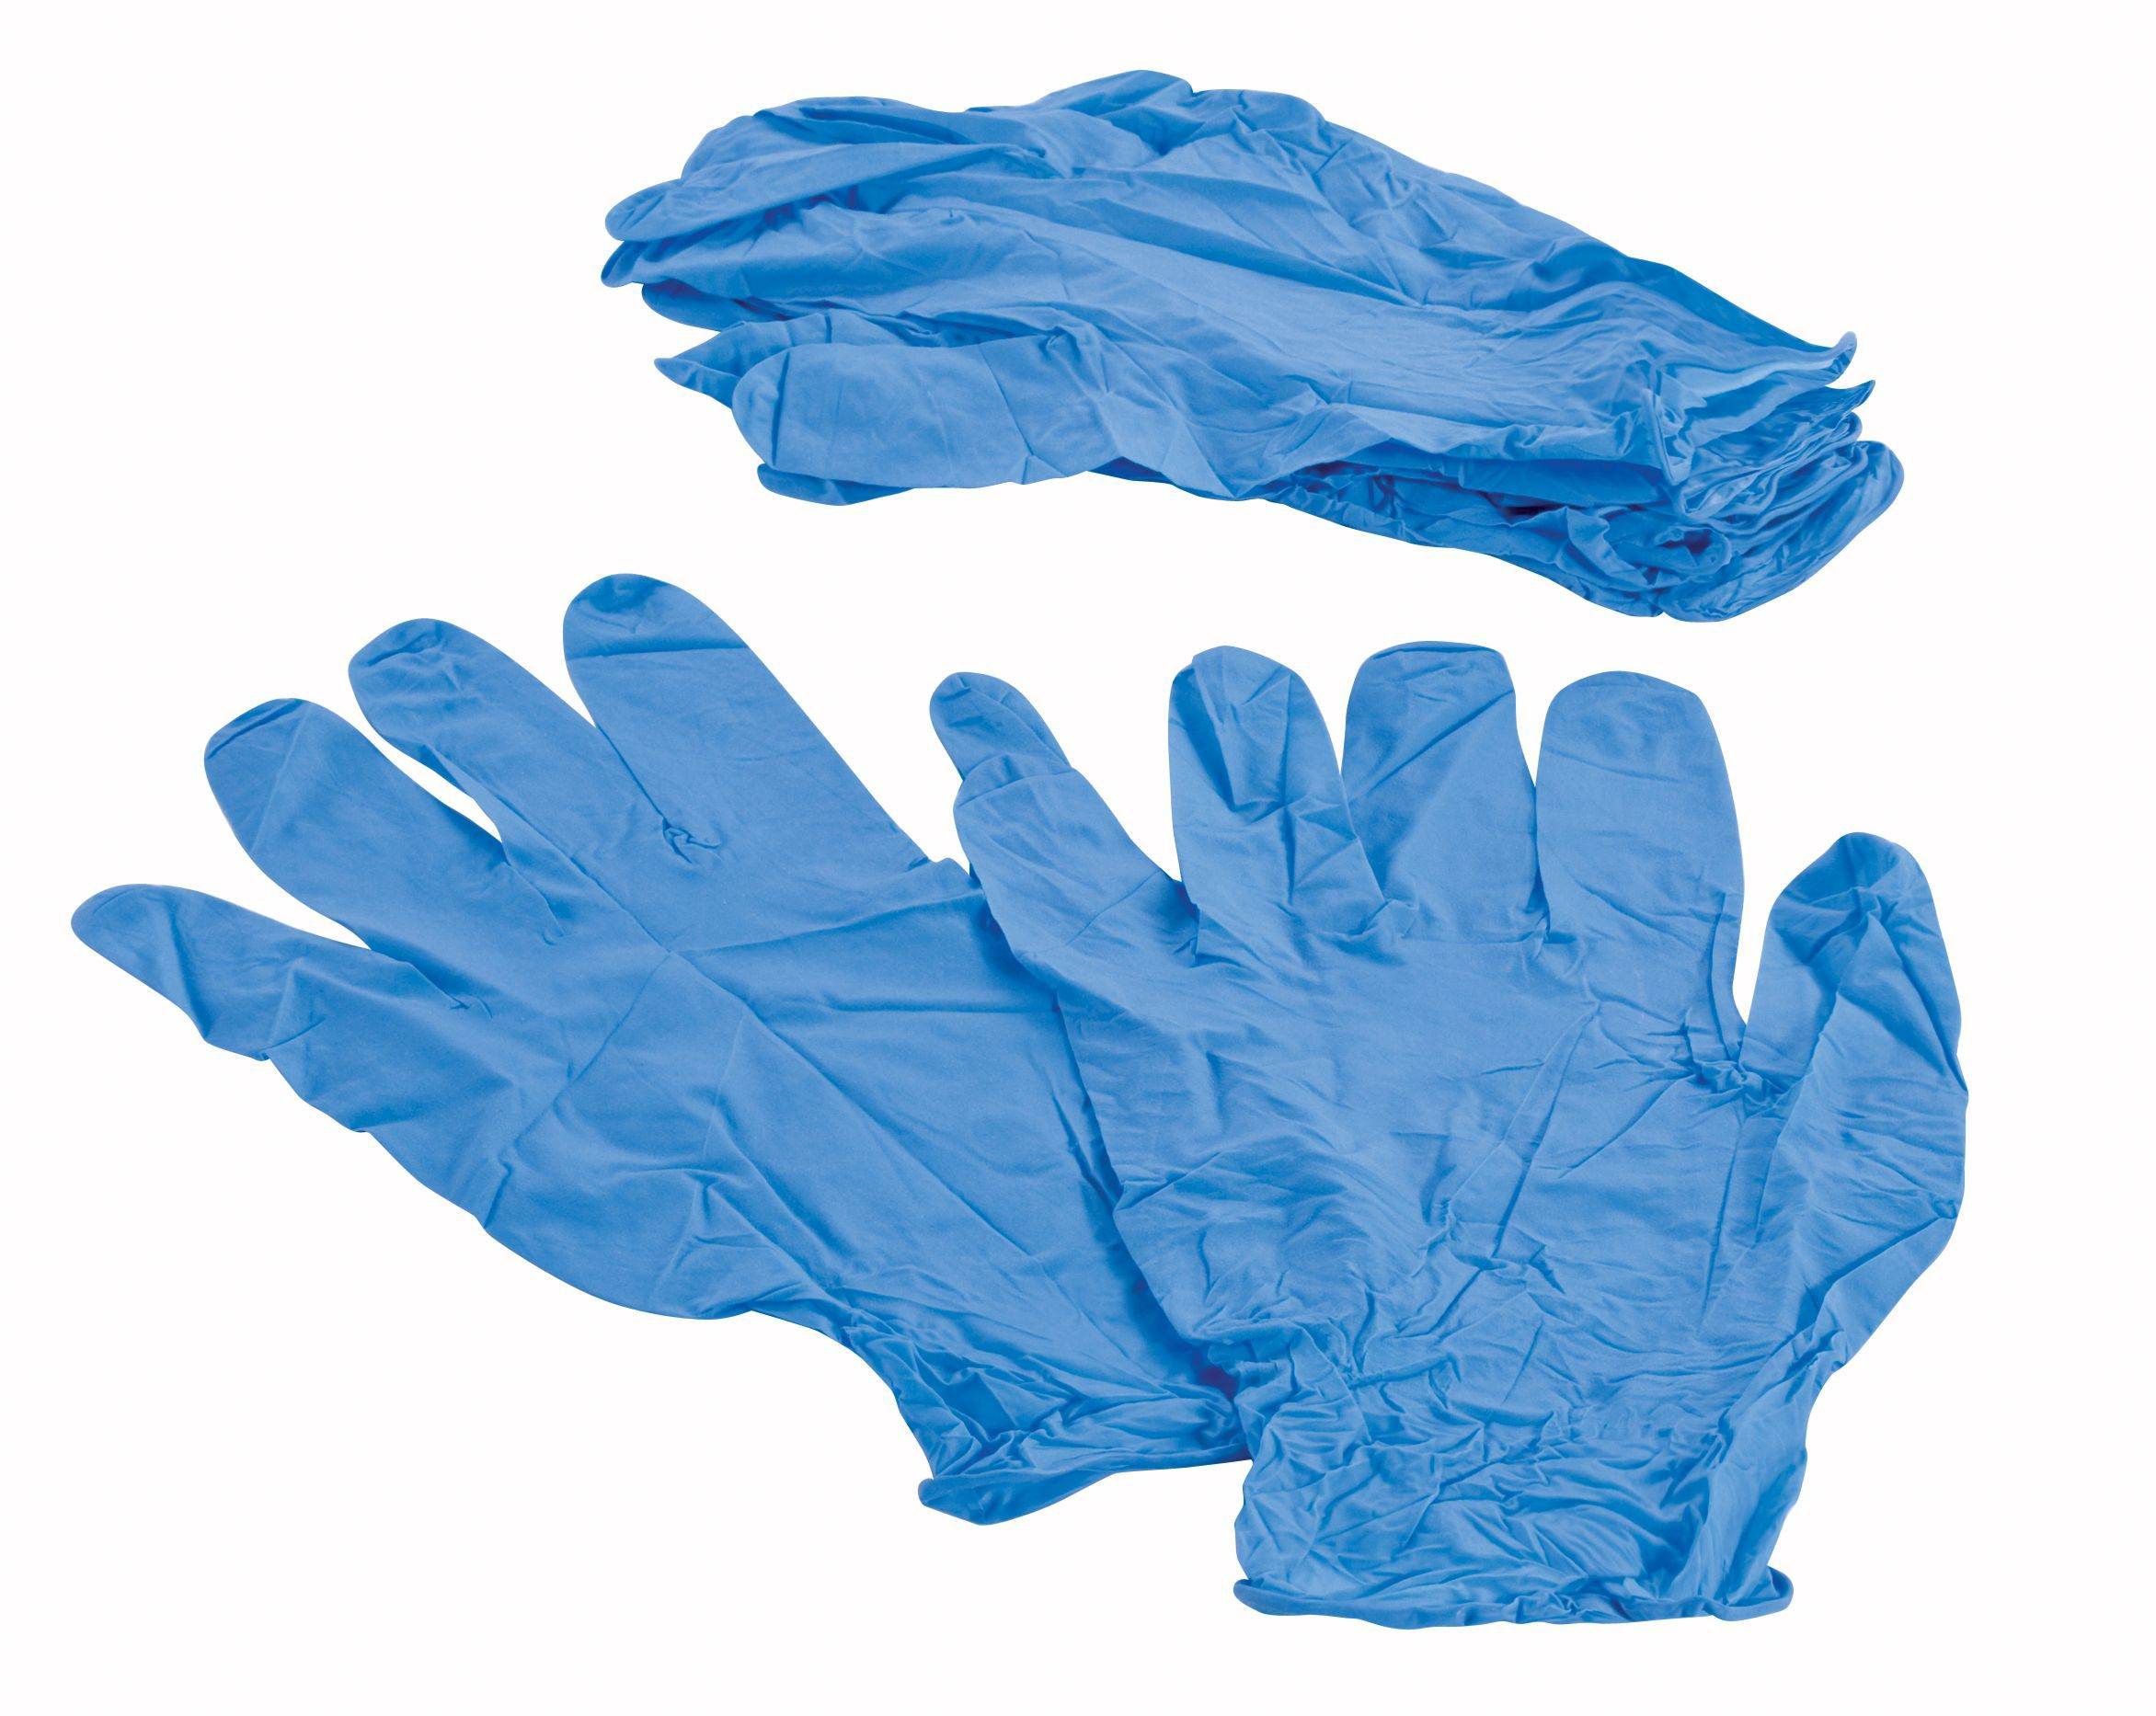 B&q Disposable Gloves, Pack Of 8